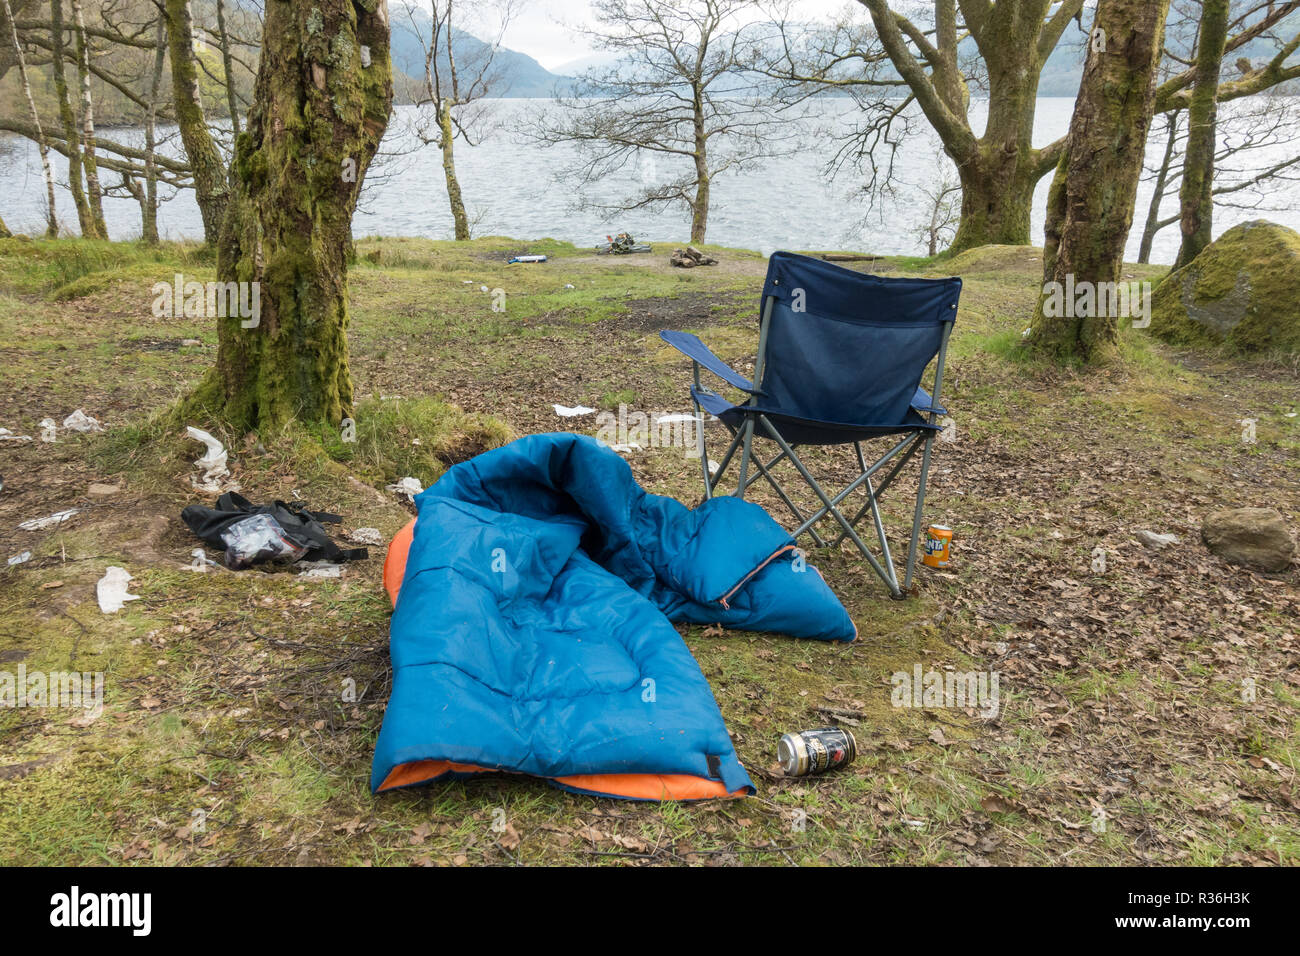 Loch Lomond wild camping litter problems - abandoned campsite - sleeping bag, chairs, rubbish - on east shore just outside camping management zone - Stock Image